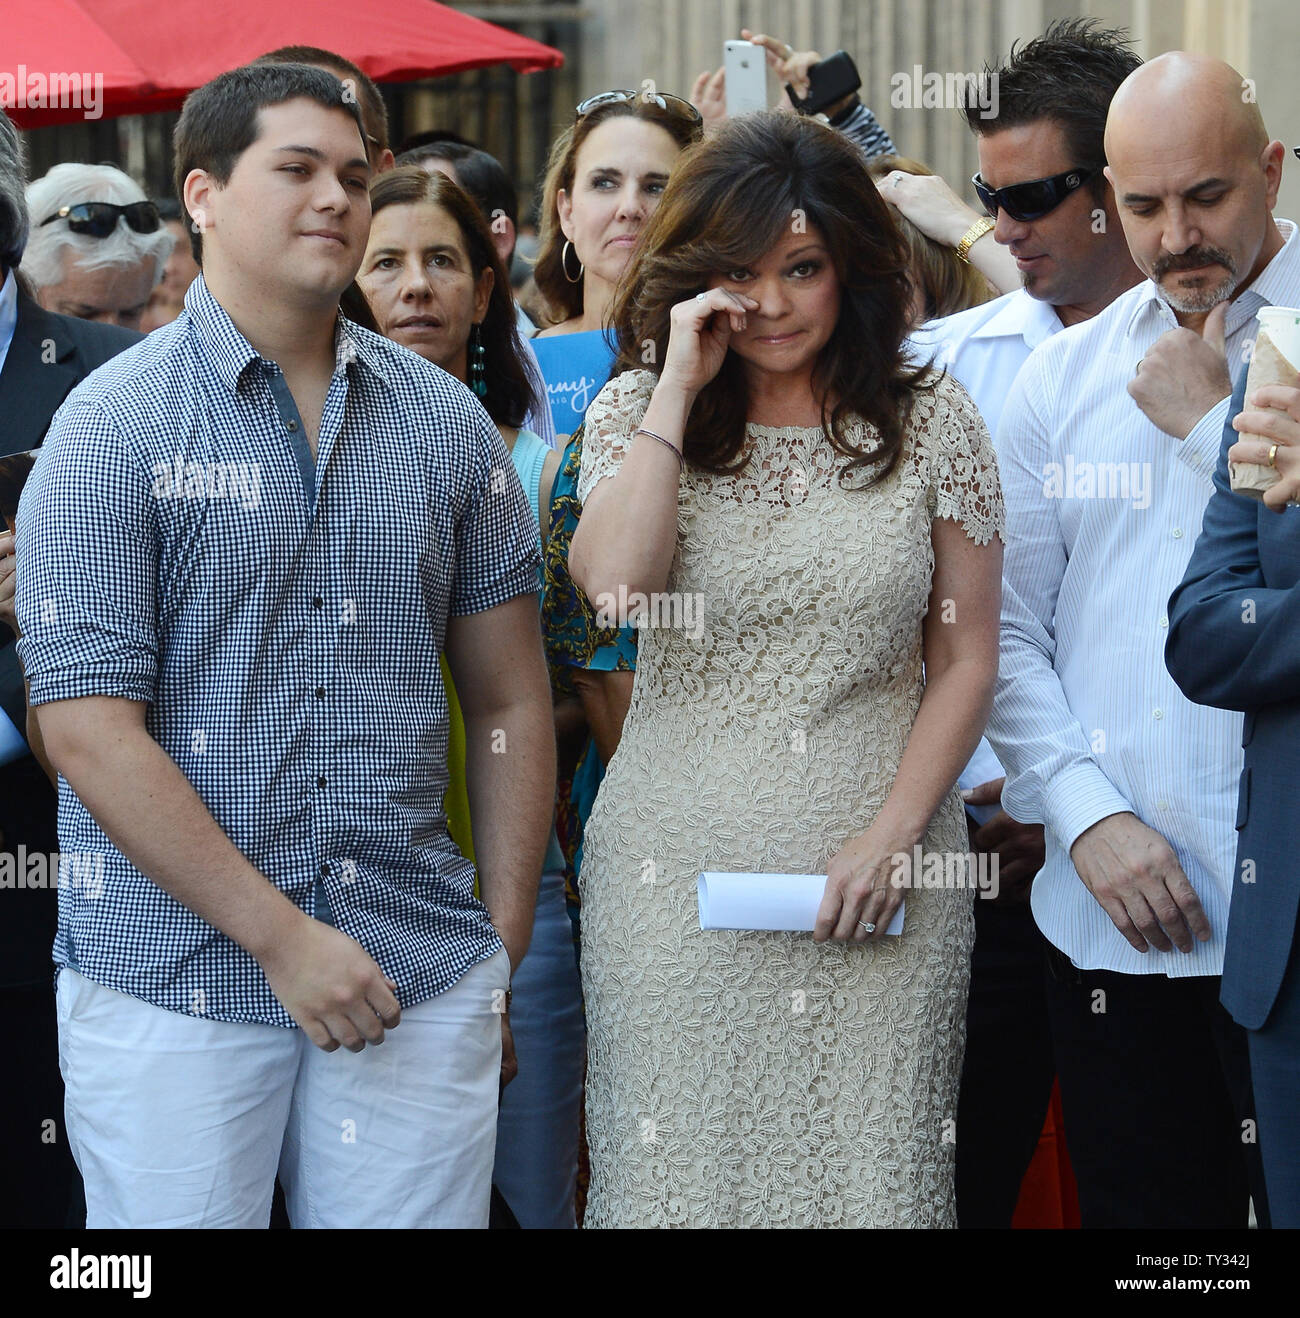 Valerie Bertinelli Wolfgang Van Halen High Resolution Stock Photography And Images Alamy